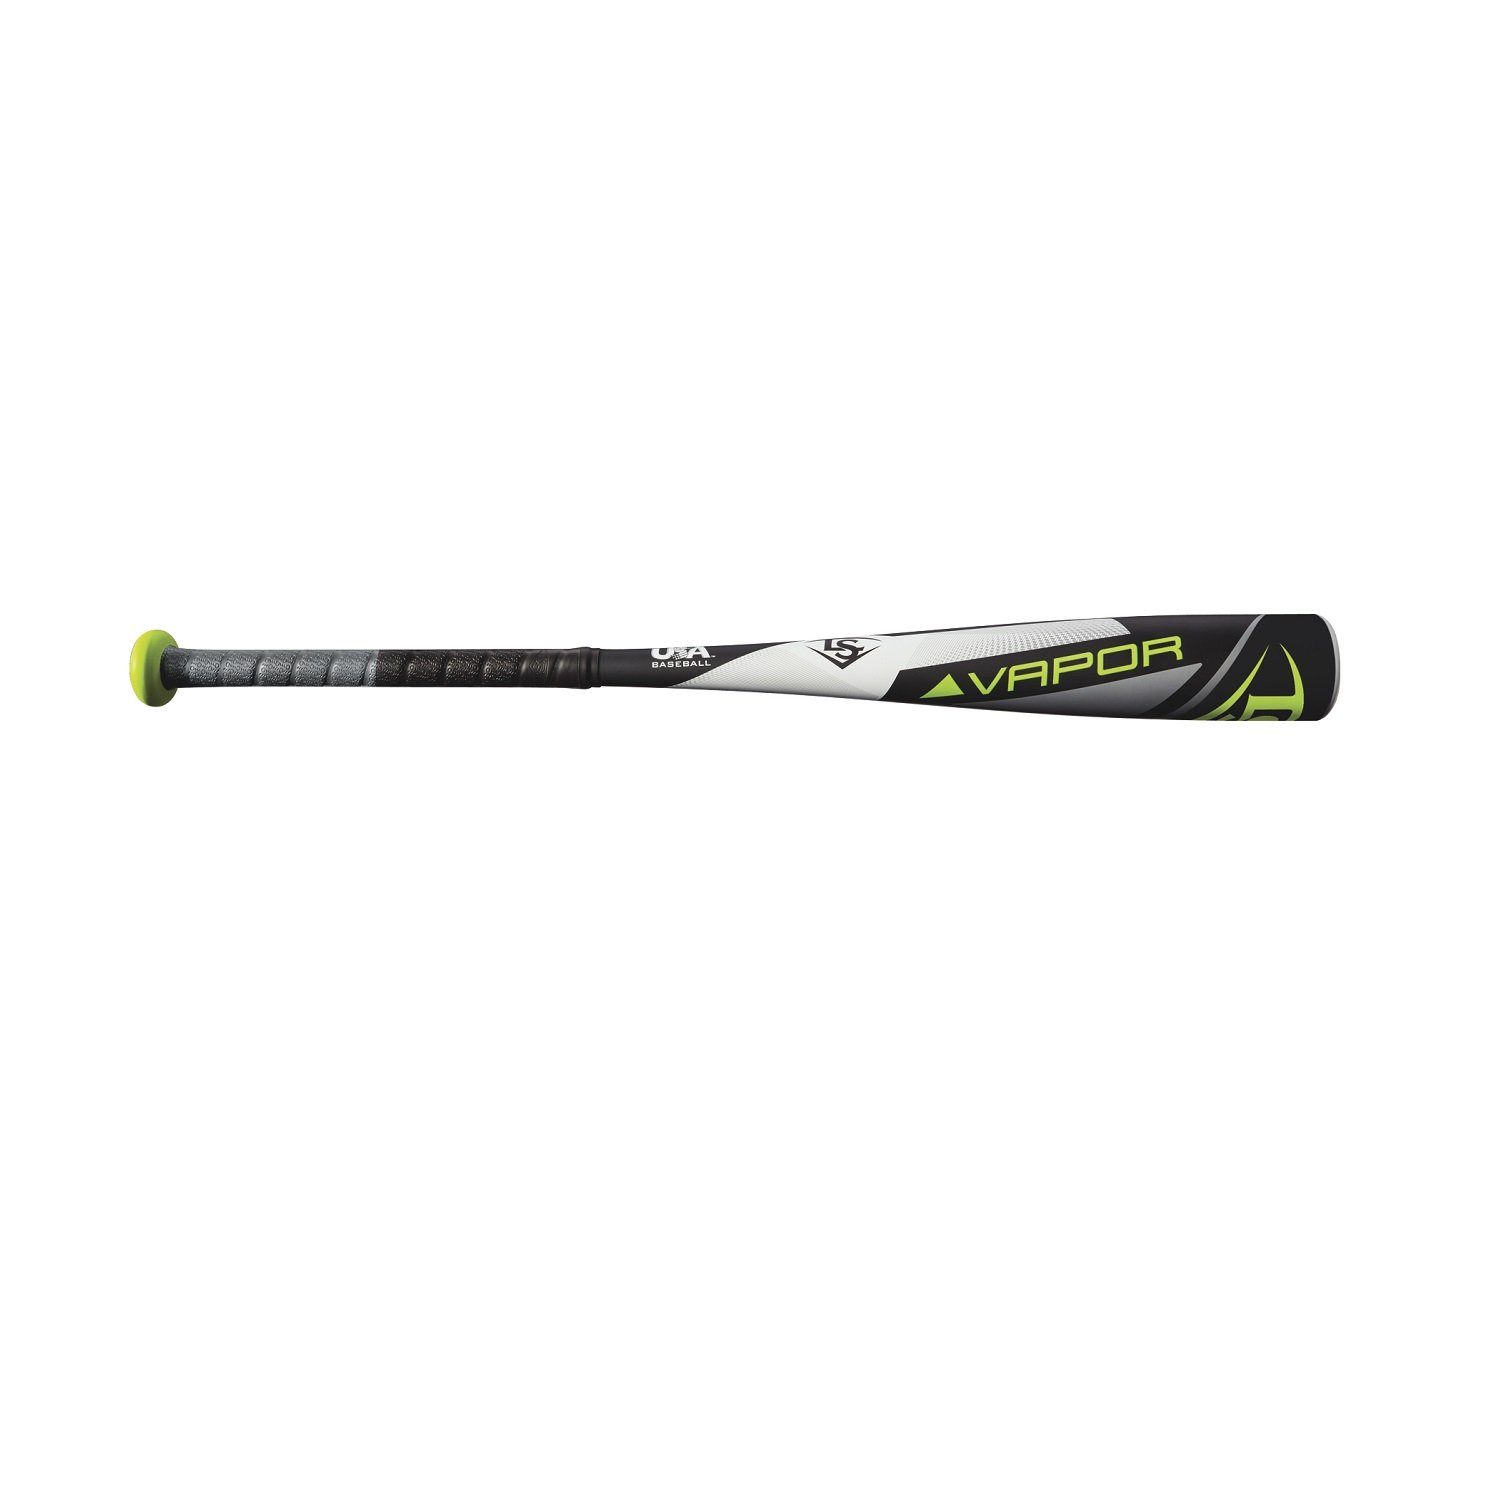 Louisville Slugger 2018 Vapor -9 USA Baseball Bat, 27 inch/18 oz by Louisville Slugger (Image #1)